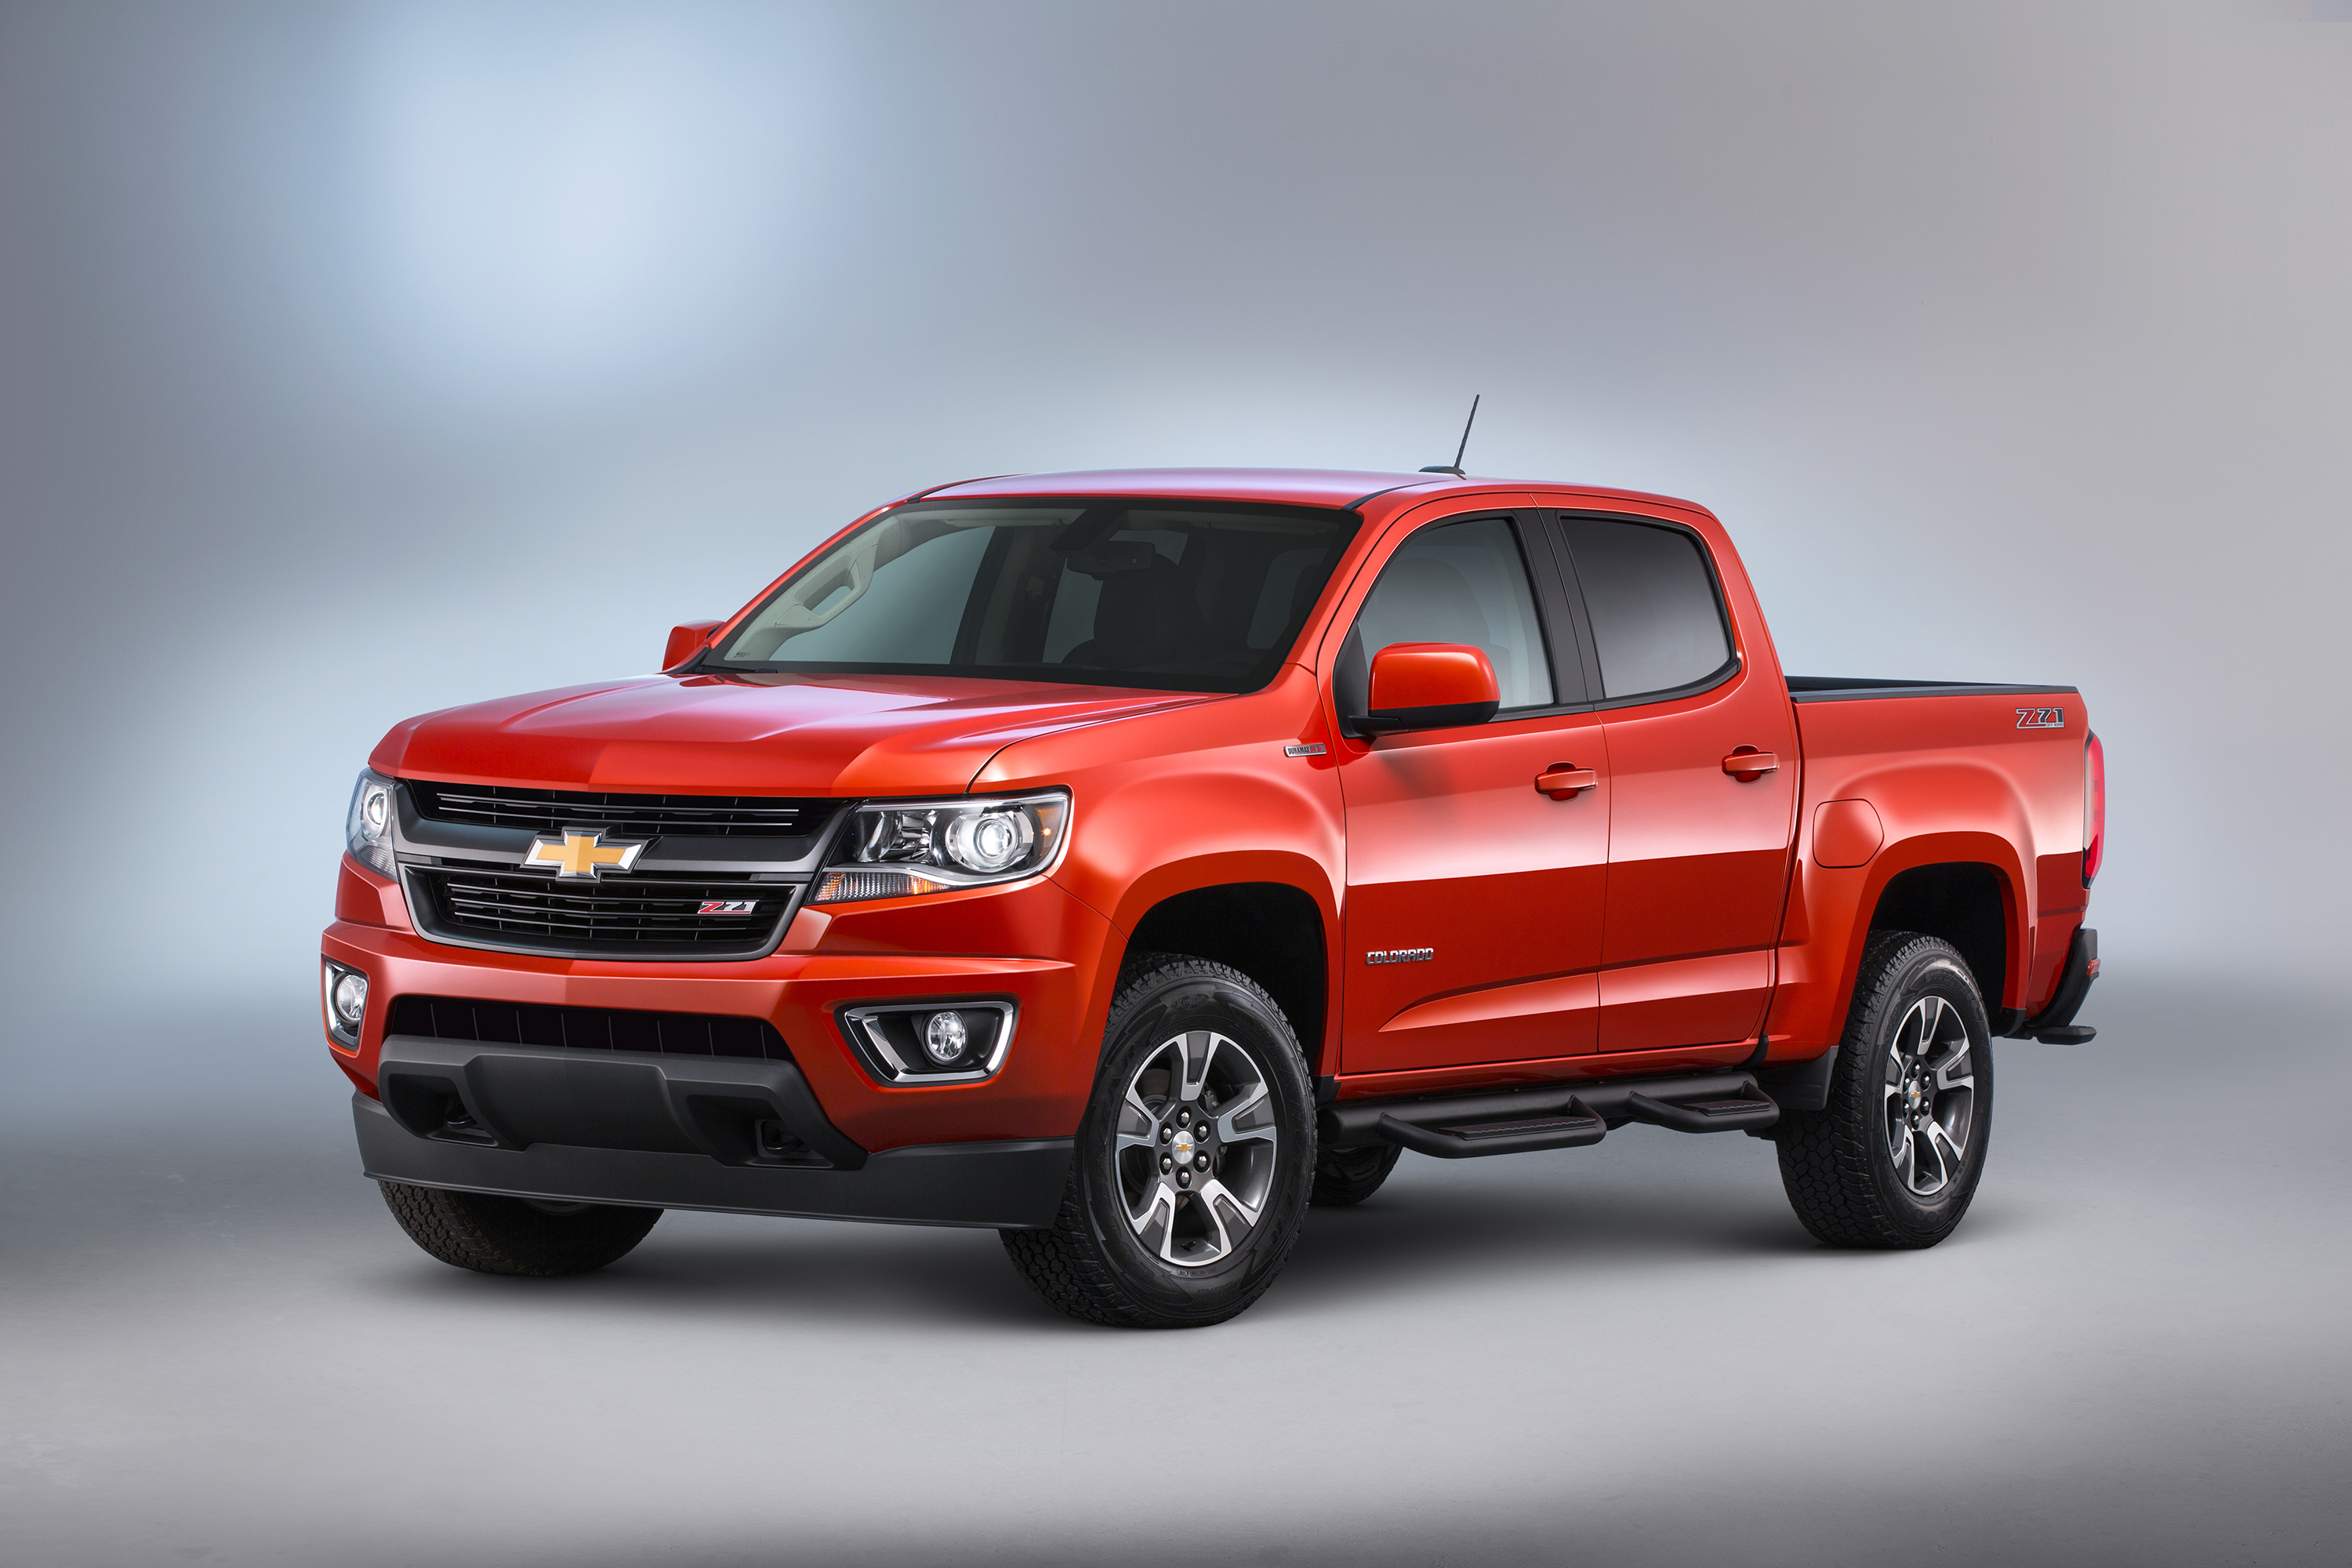 2016 Chevrolet Colorado Duramax TurboDiesel 048 chevrolet introduces colorado duramax diesel 1988 Chevy Truck Wiring Diagrams at webbmarketing.co